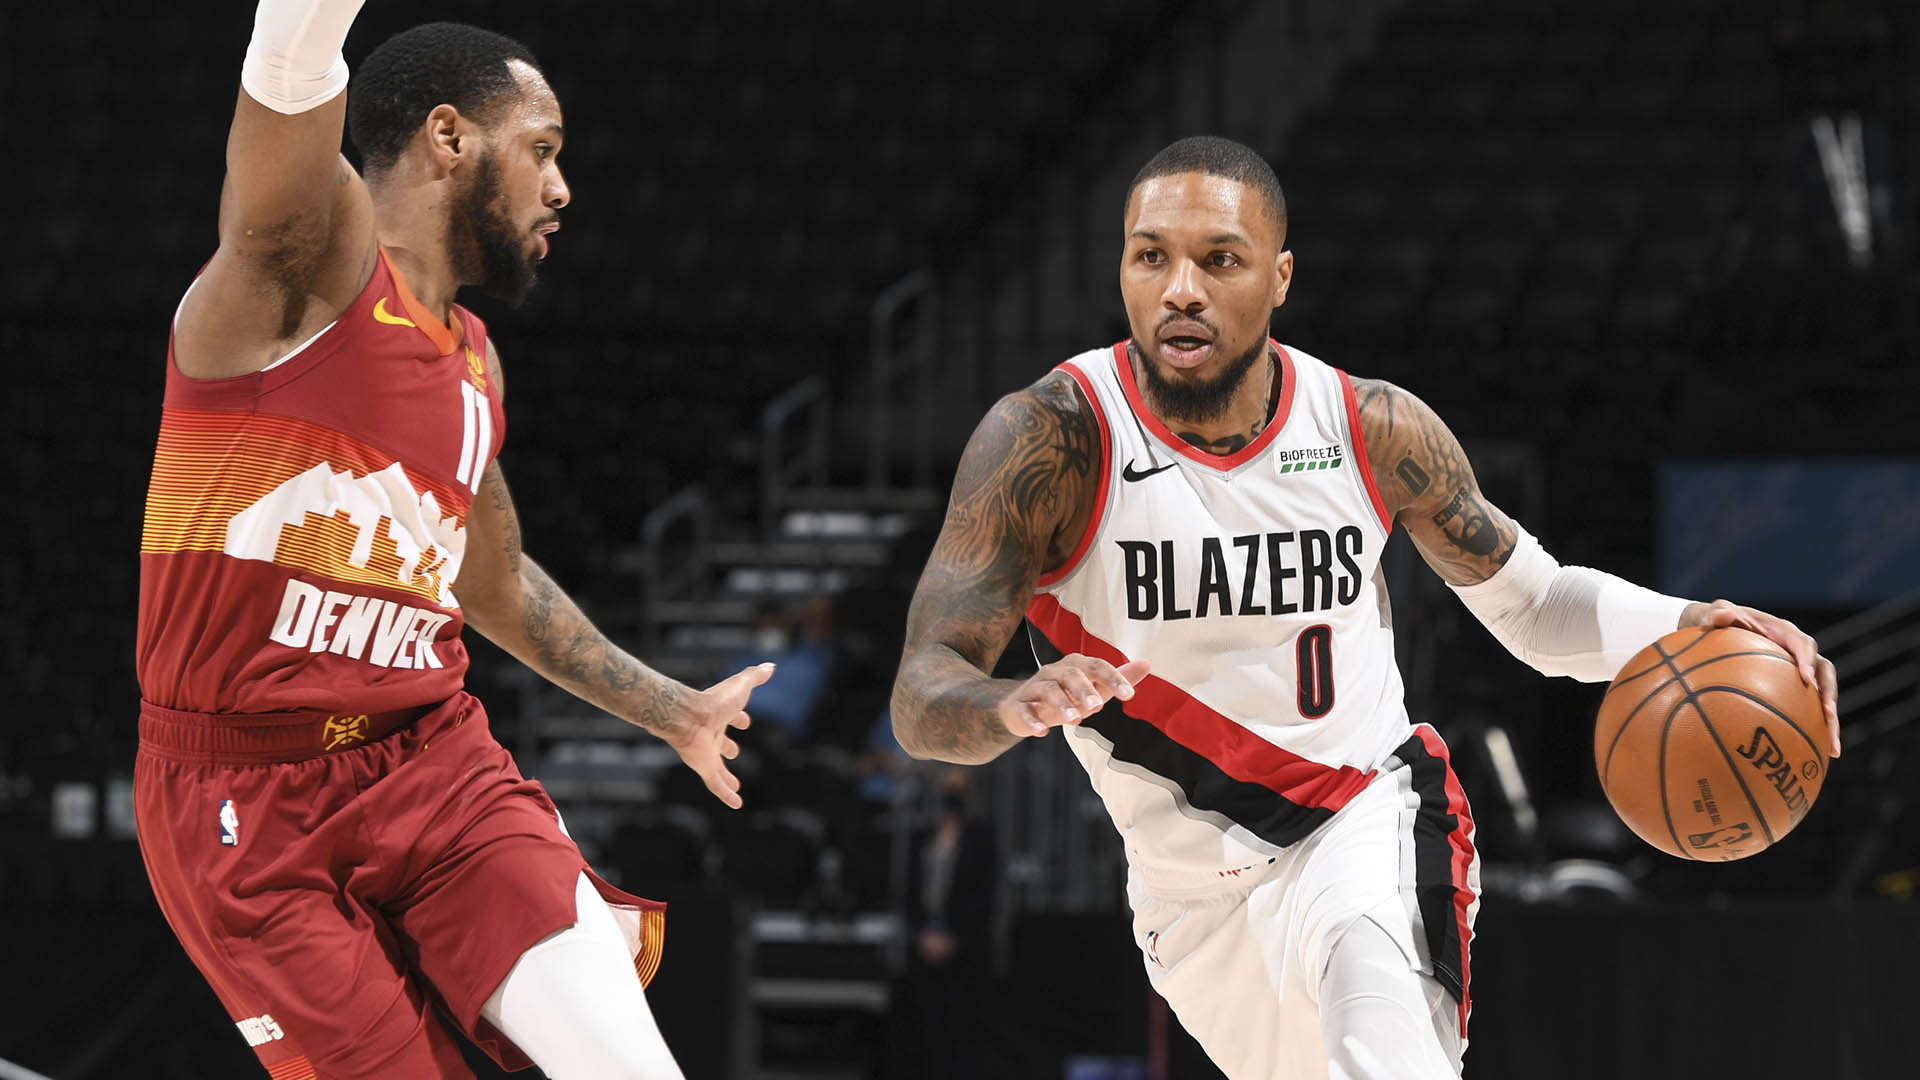 Series preview: Depth, defense will be key in Nuggets-Blazers series